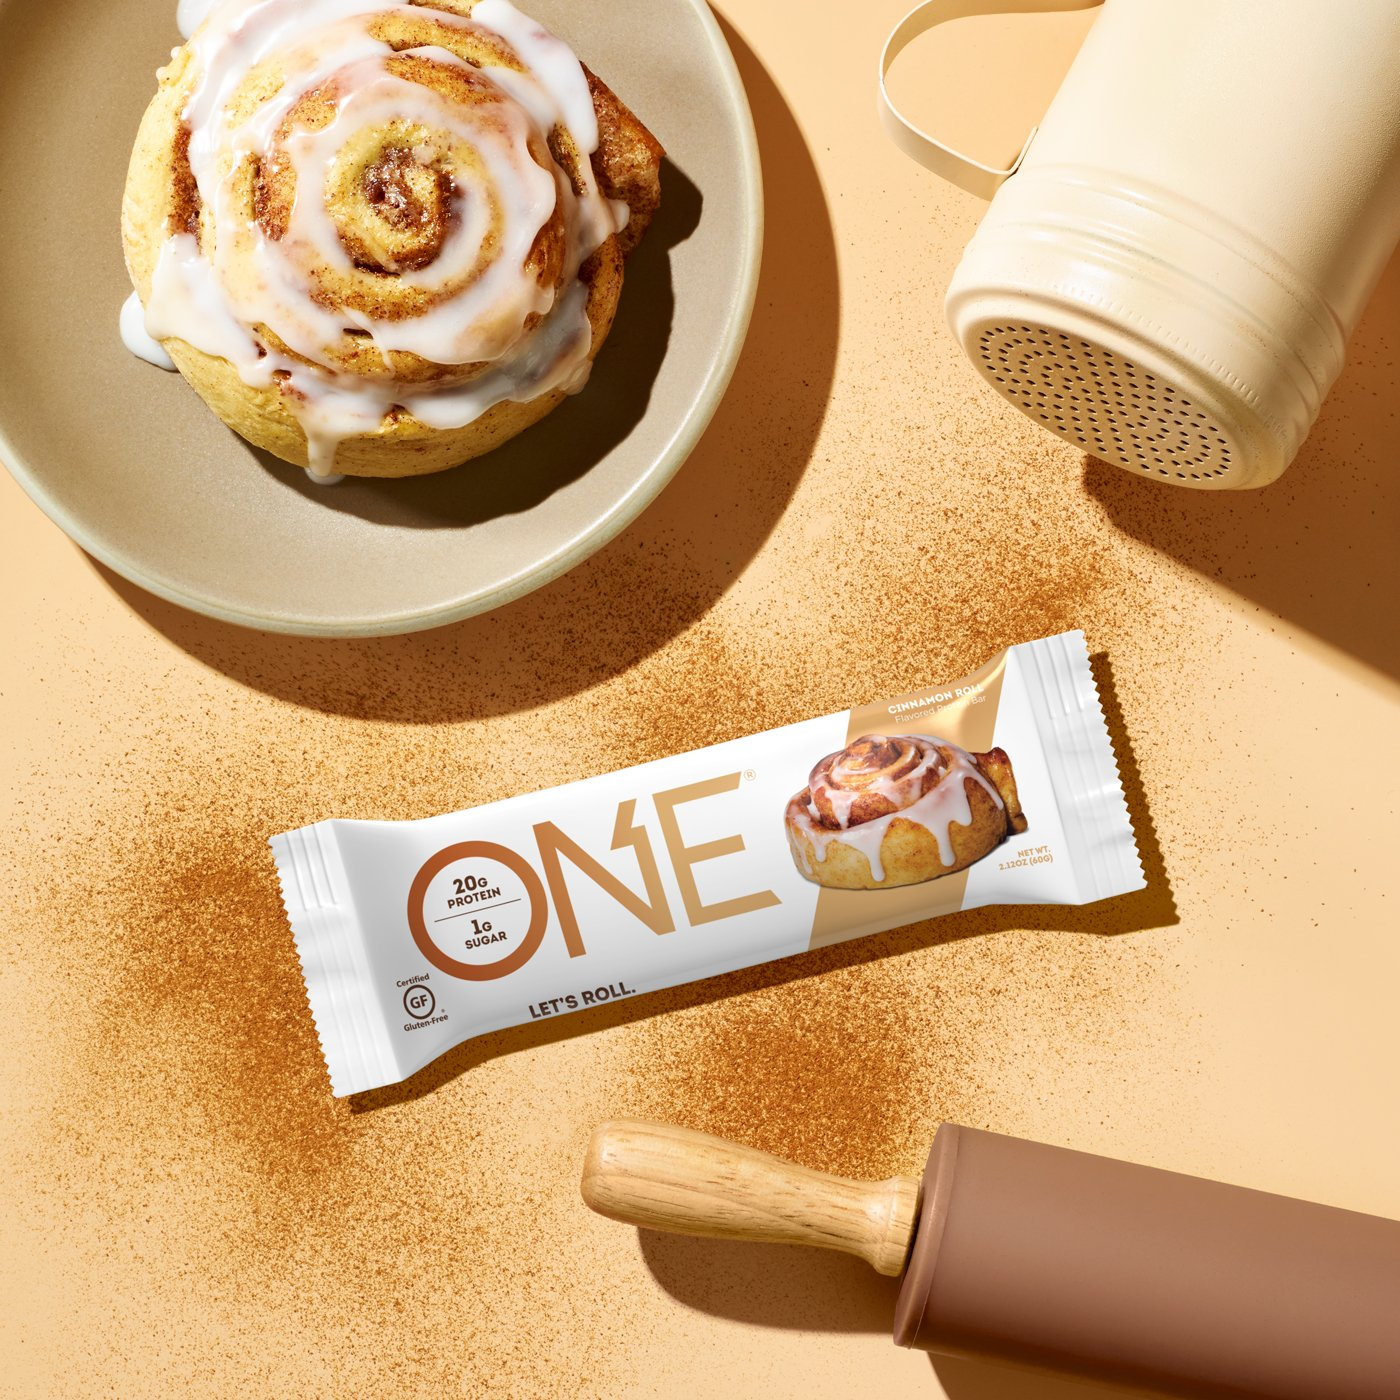 ONE Bars Cinnamon Roll Protein Bar | Let's Roll